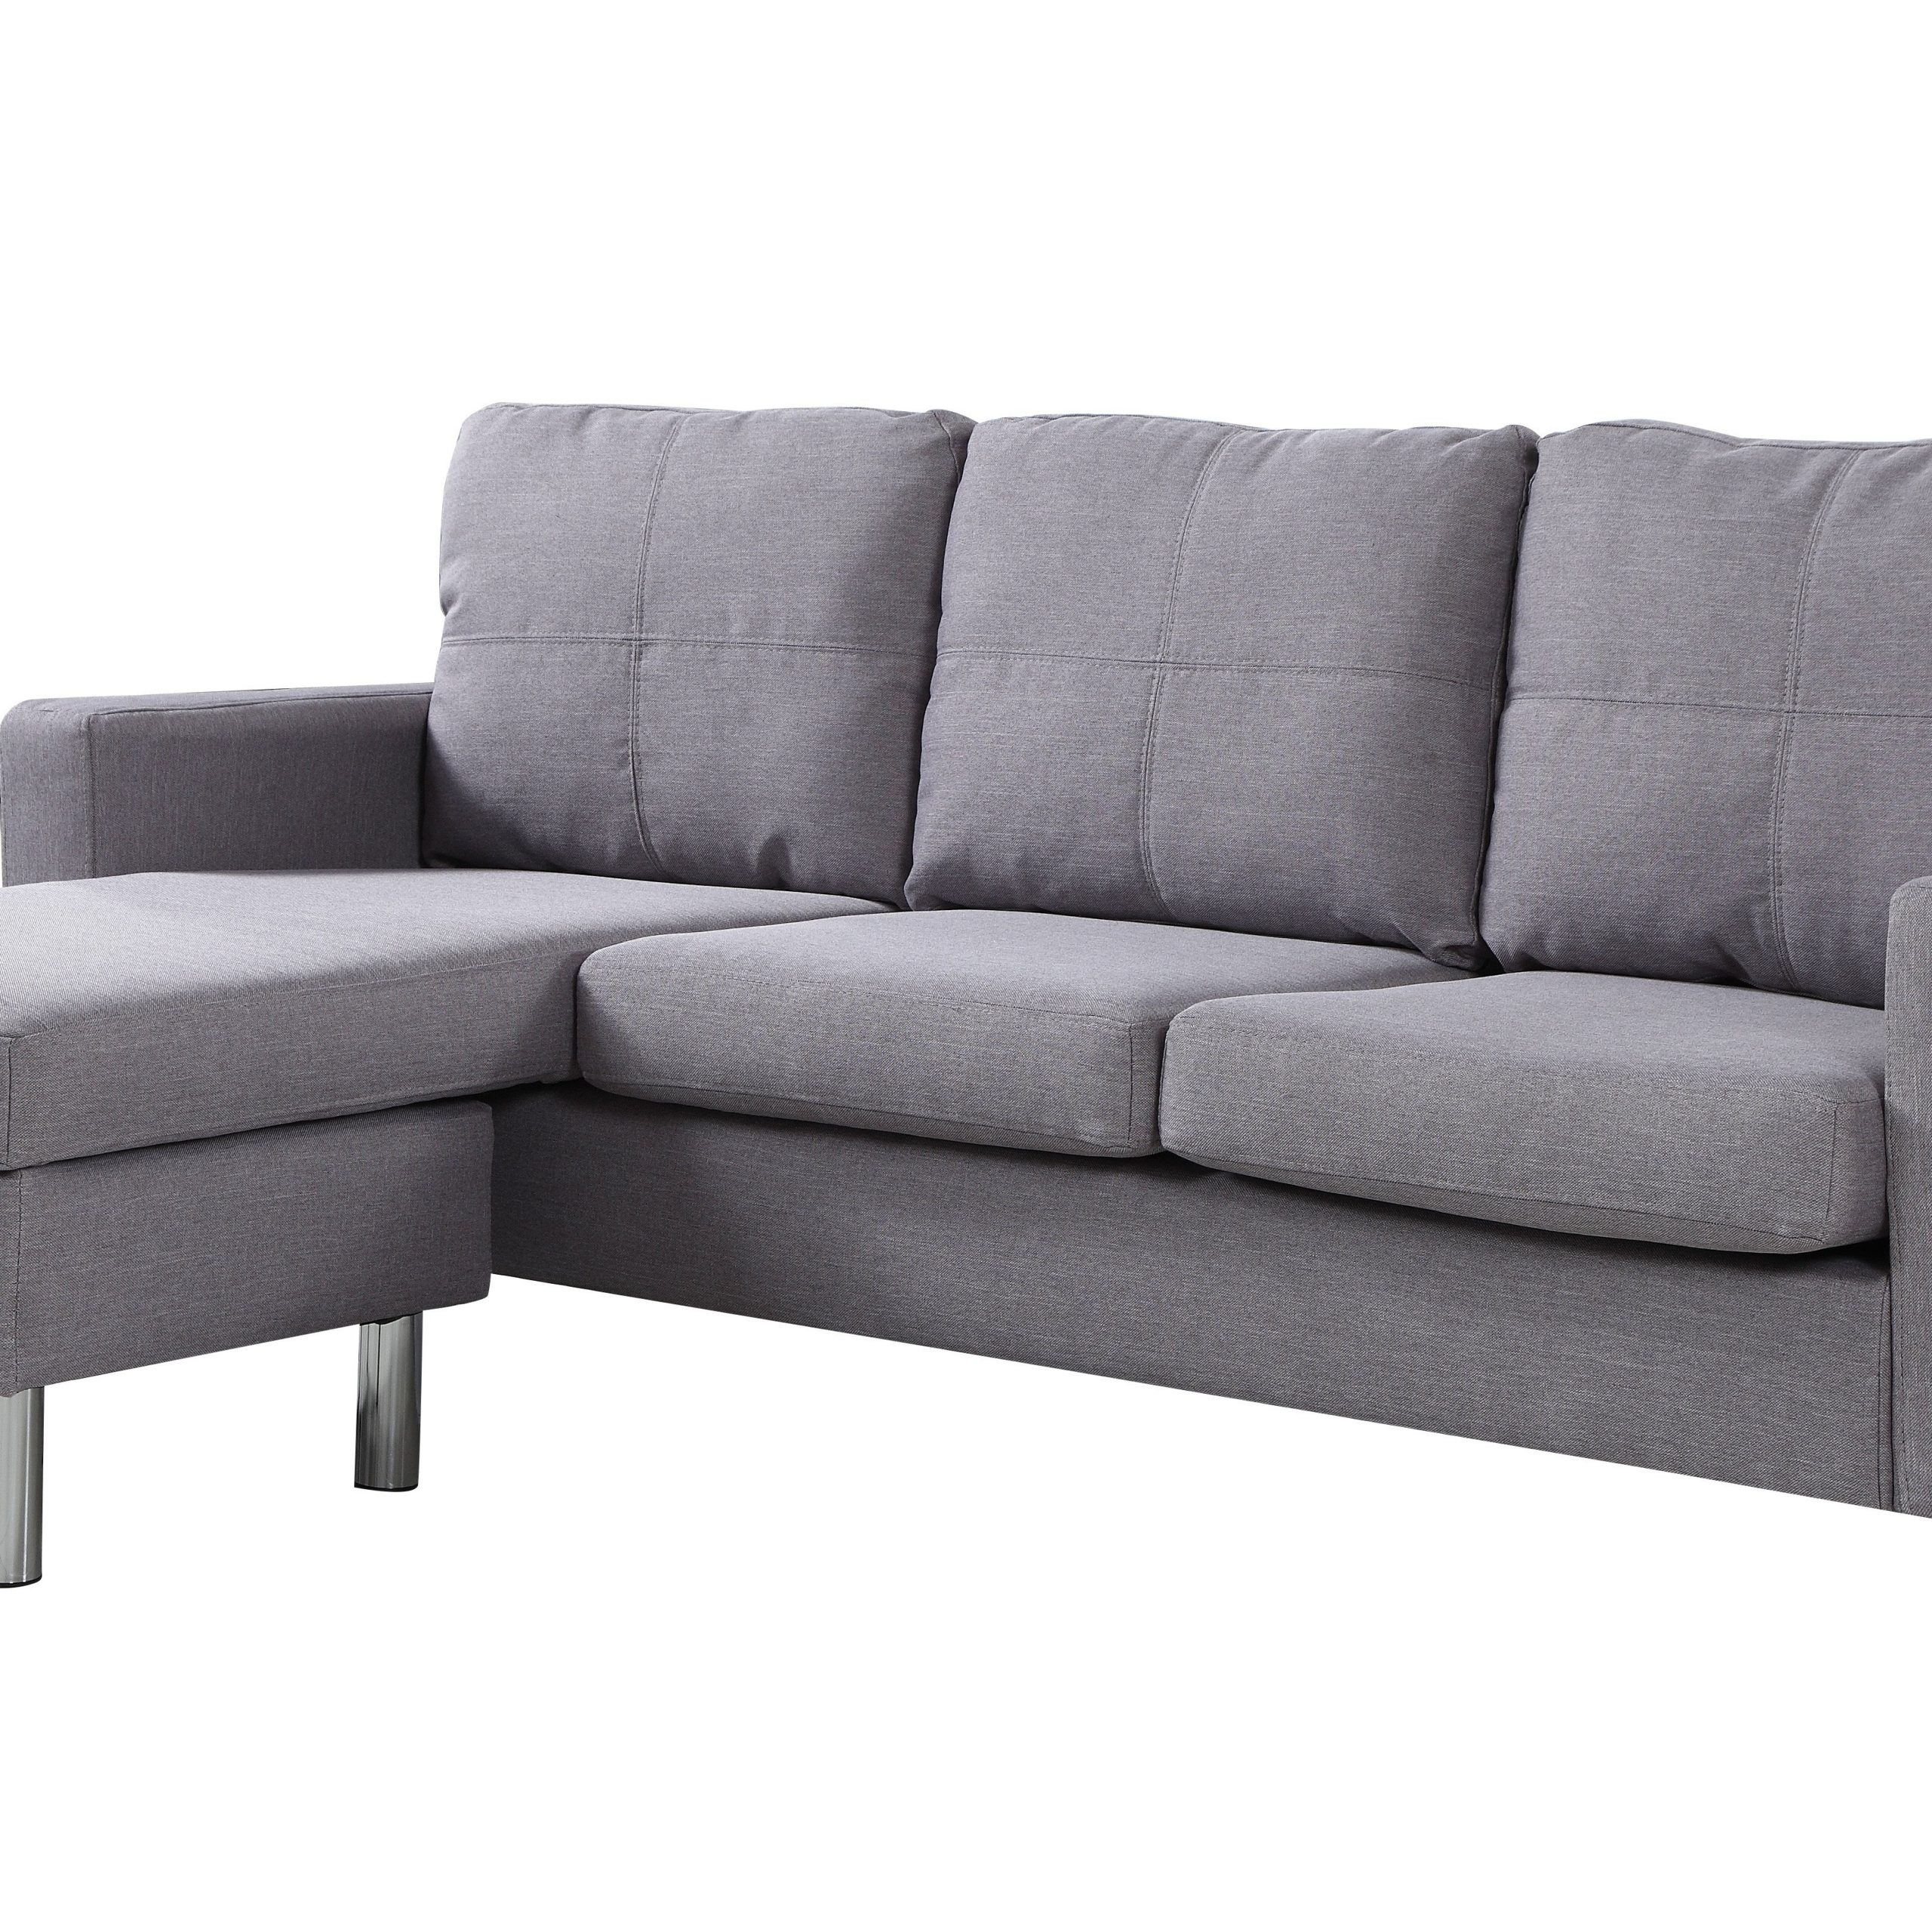 Fashionable Modern Living Reversible Fabric Sectional Sofa, Light Grey For 2pc Crowningshield Contemporary Chaise Sofas Light Gray (View 4 of 20)